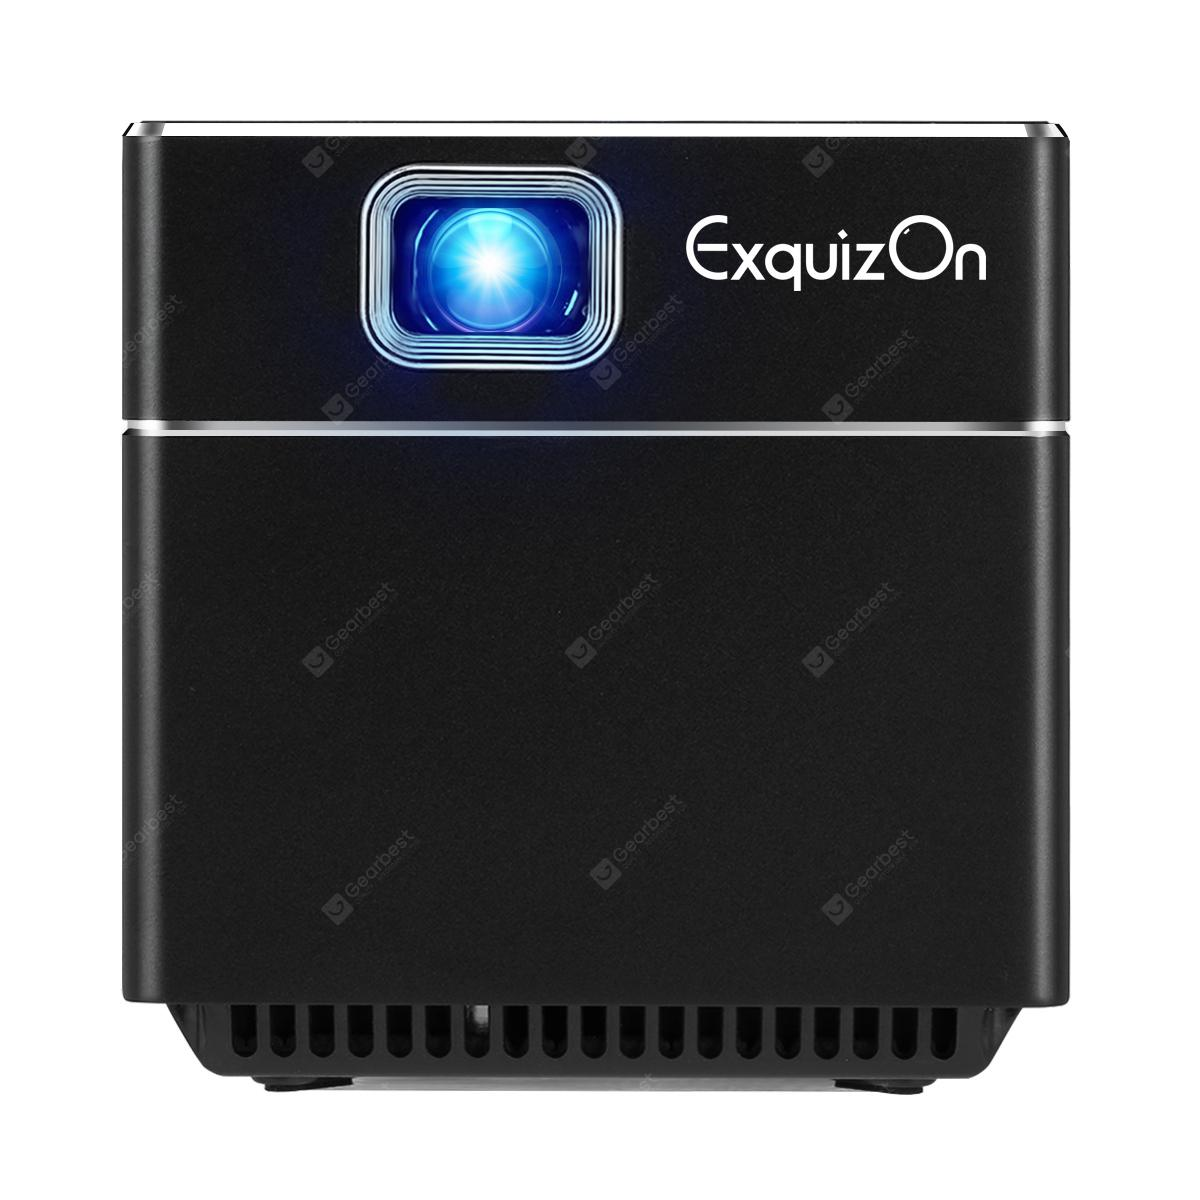 Exquizon S6 Mini Cube DLP Pocket Projector - BLACK EU PLUG